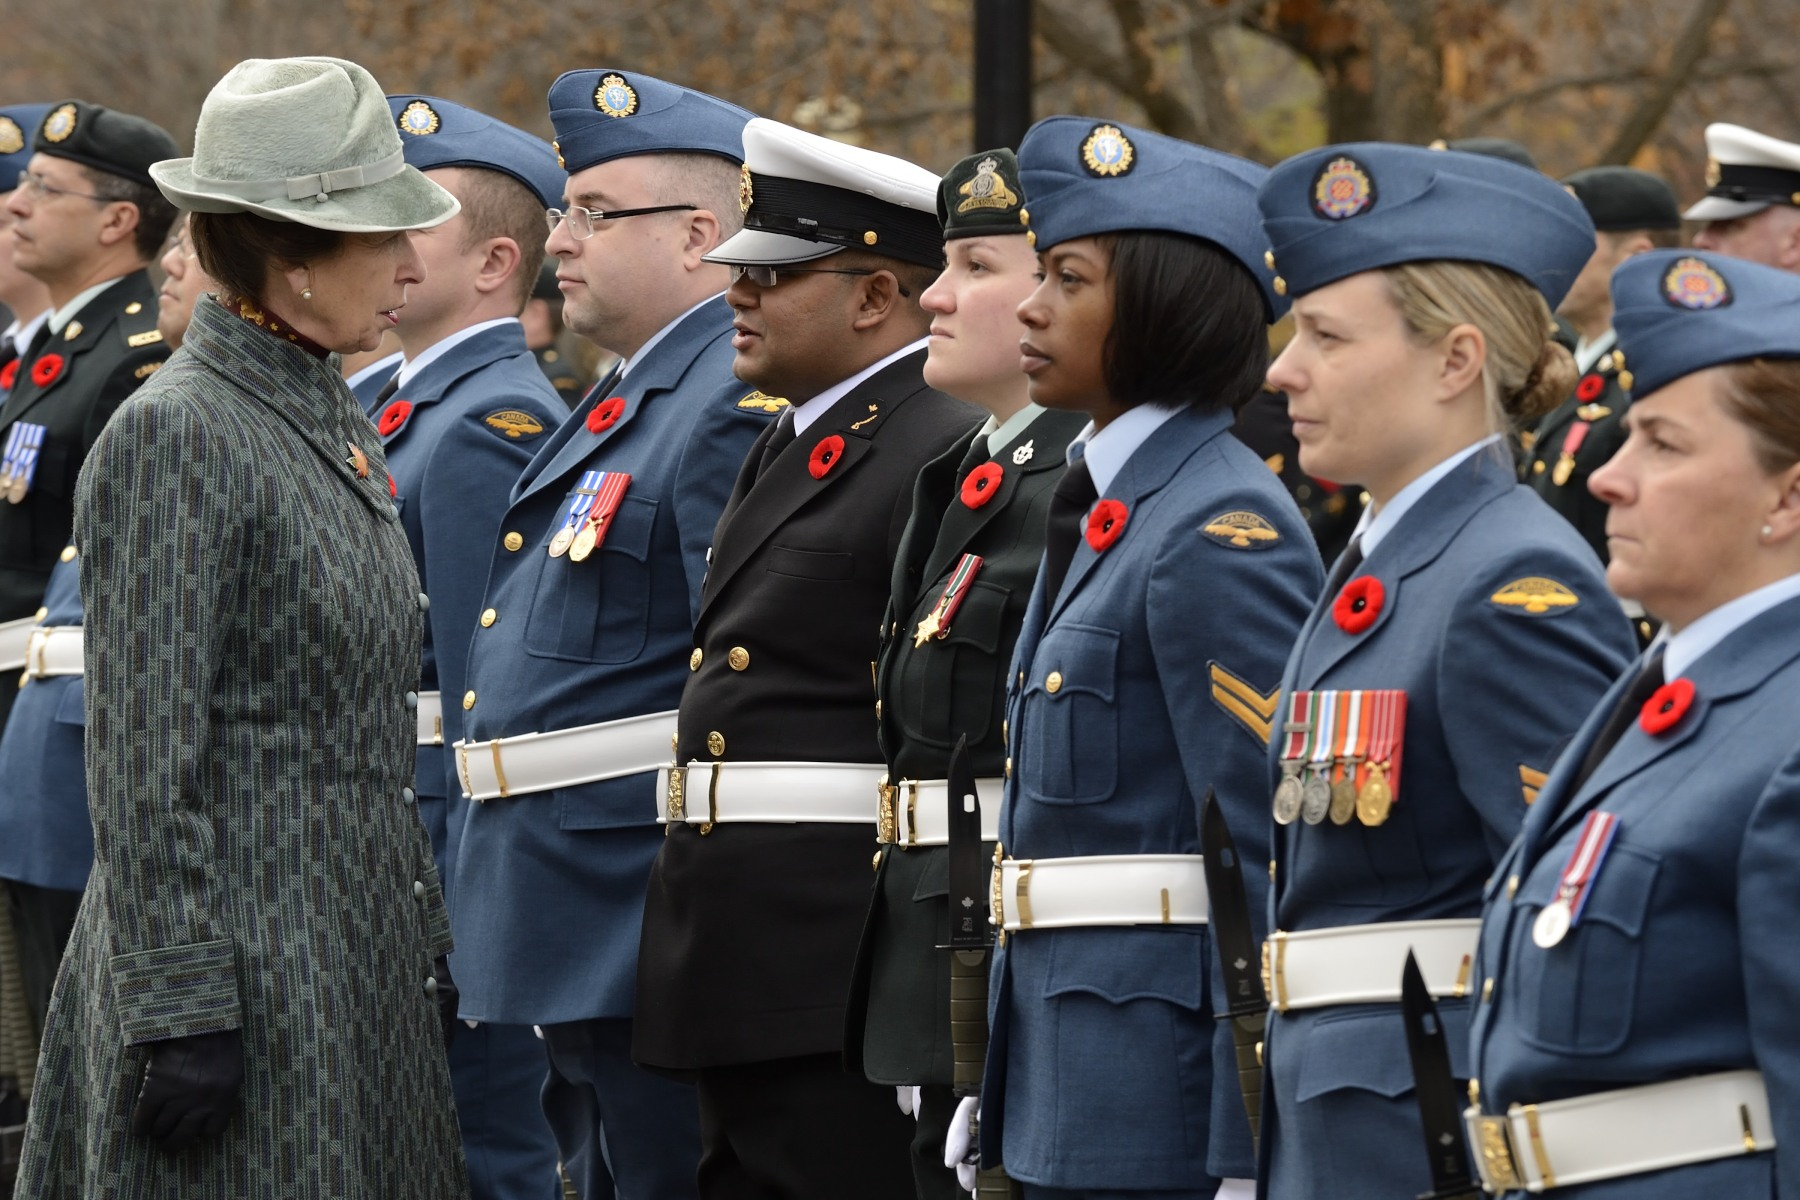 Her Royal Highness spoke to a few members of the Canadian Armed Forces.